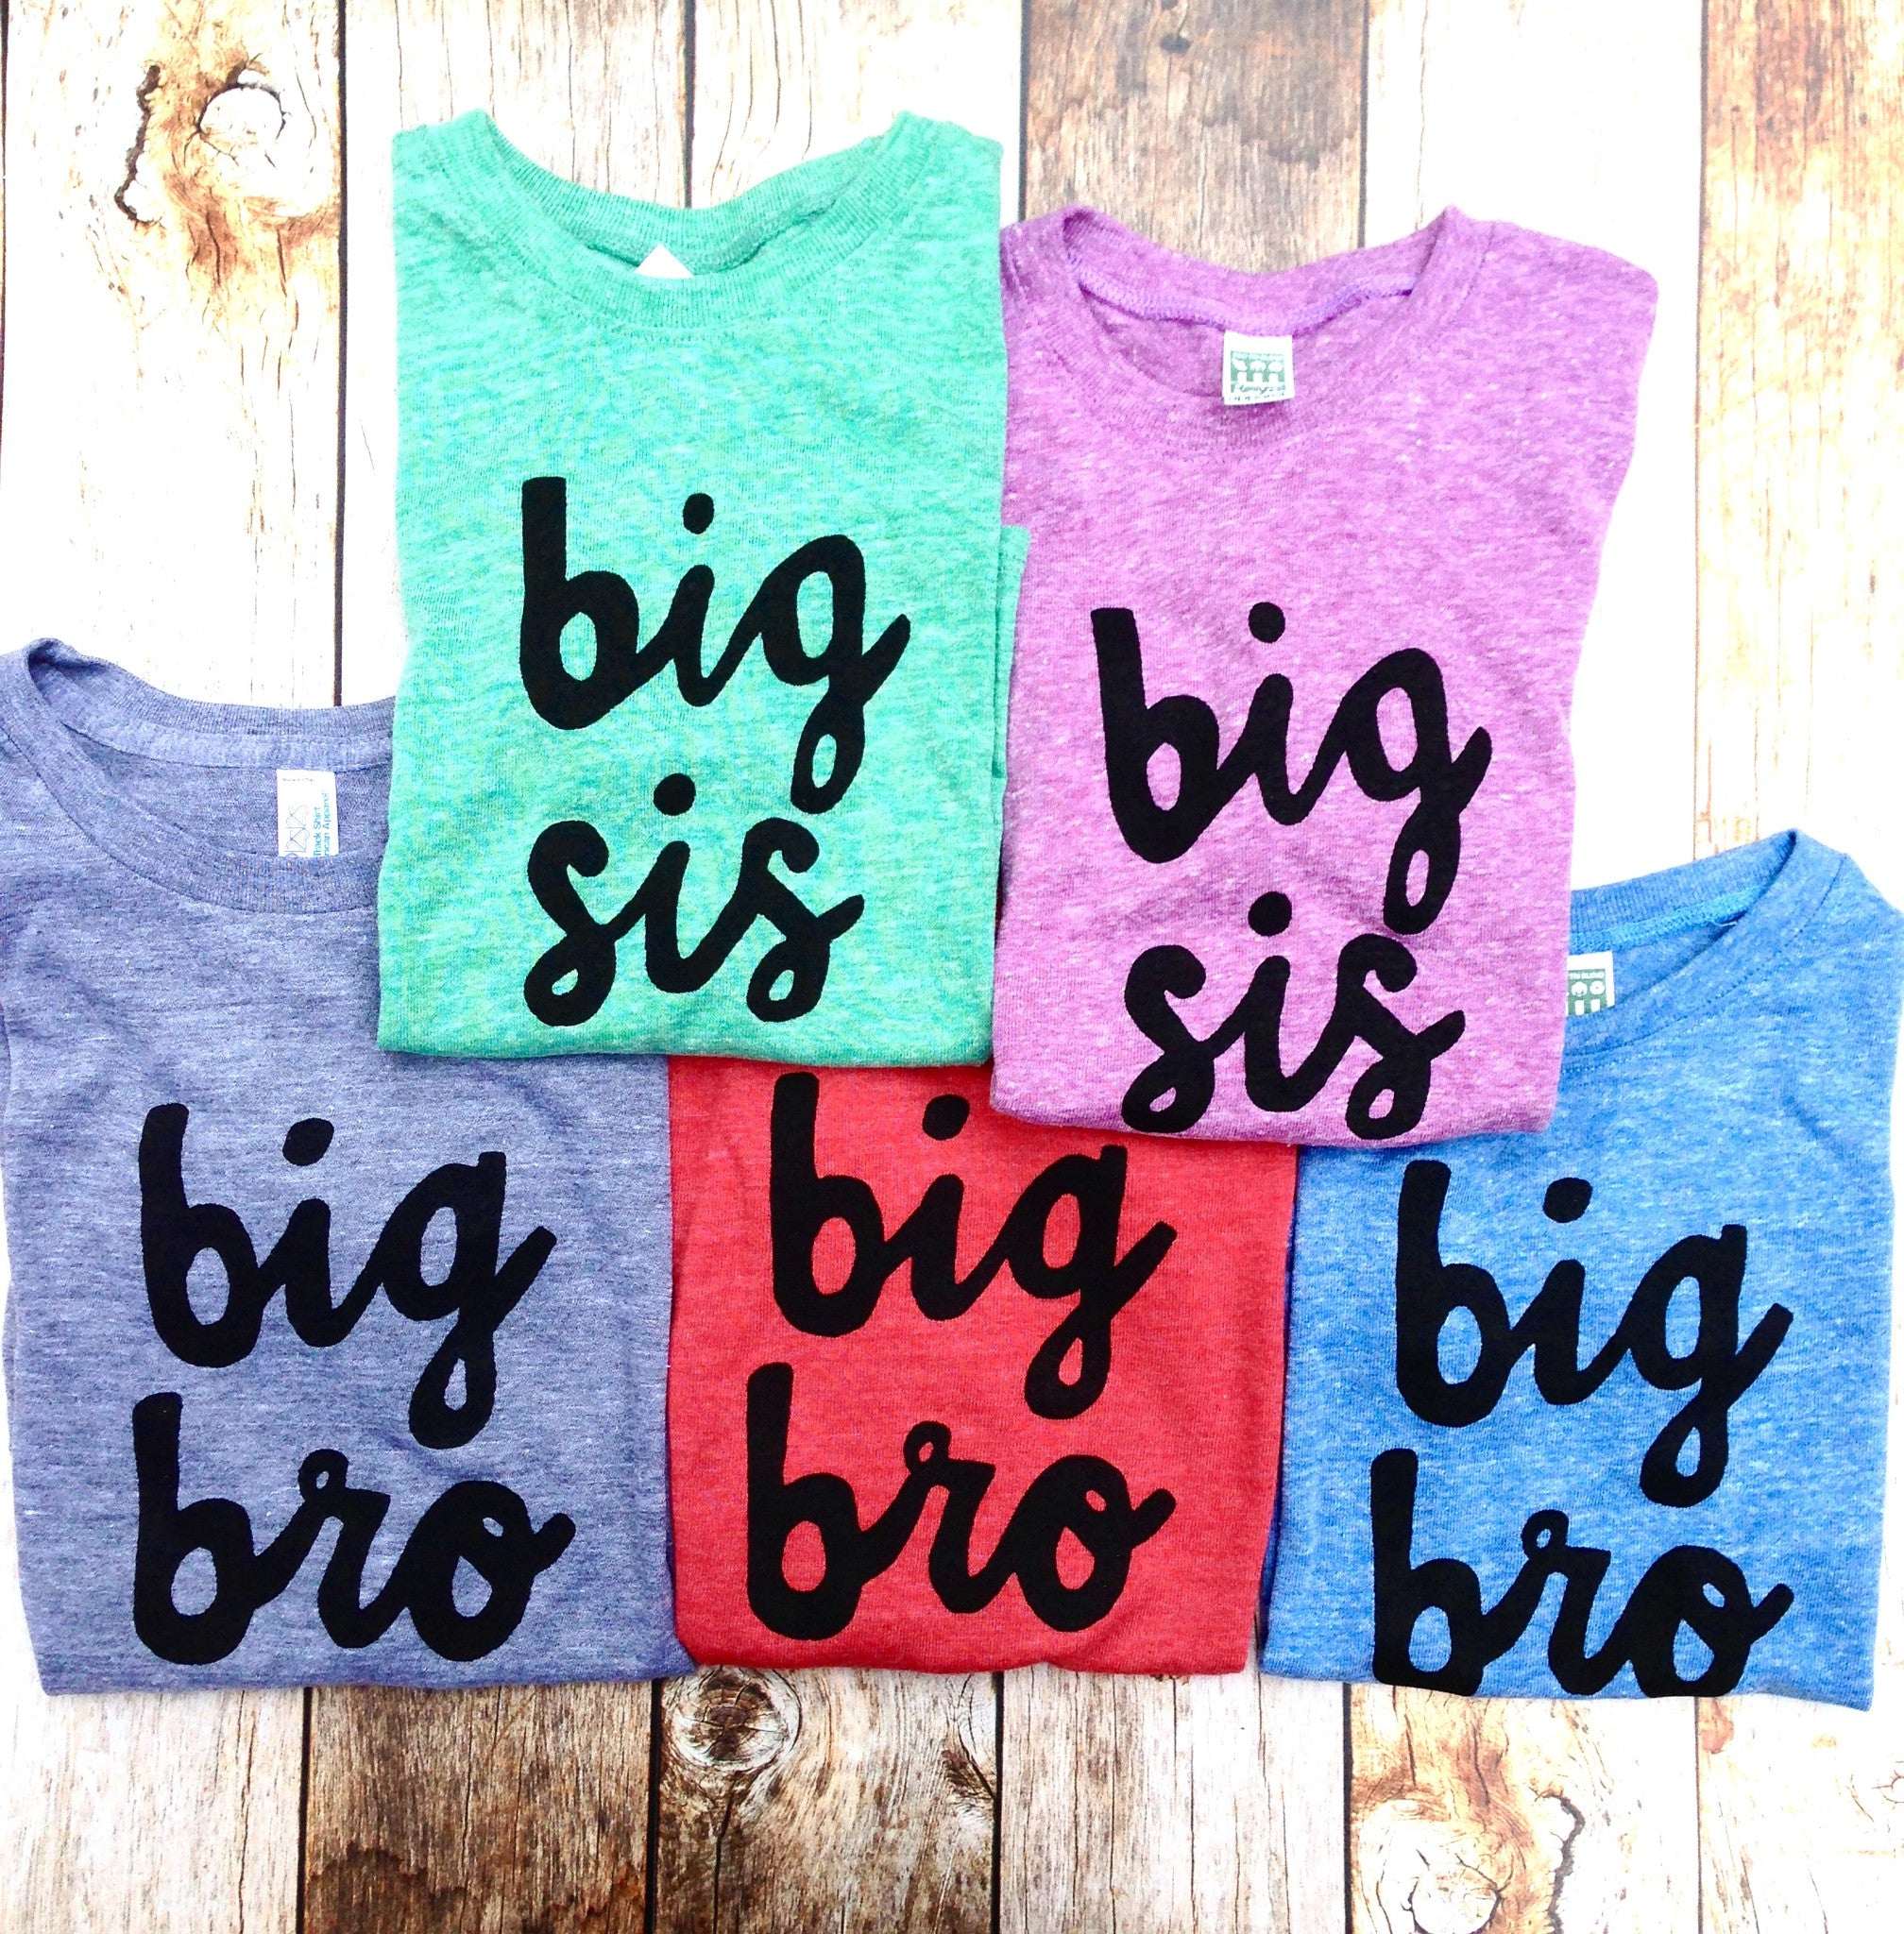 Eco organic newborn photography big bro or big sis sibling shirts for birth announcement hospital outfit with newborn Colors- red, blue, grey, mint, purple- boys girl kids shirt